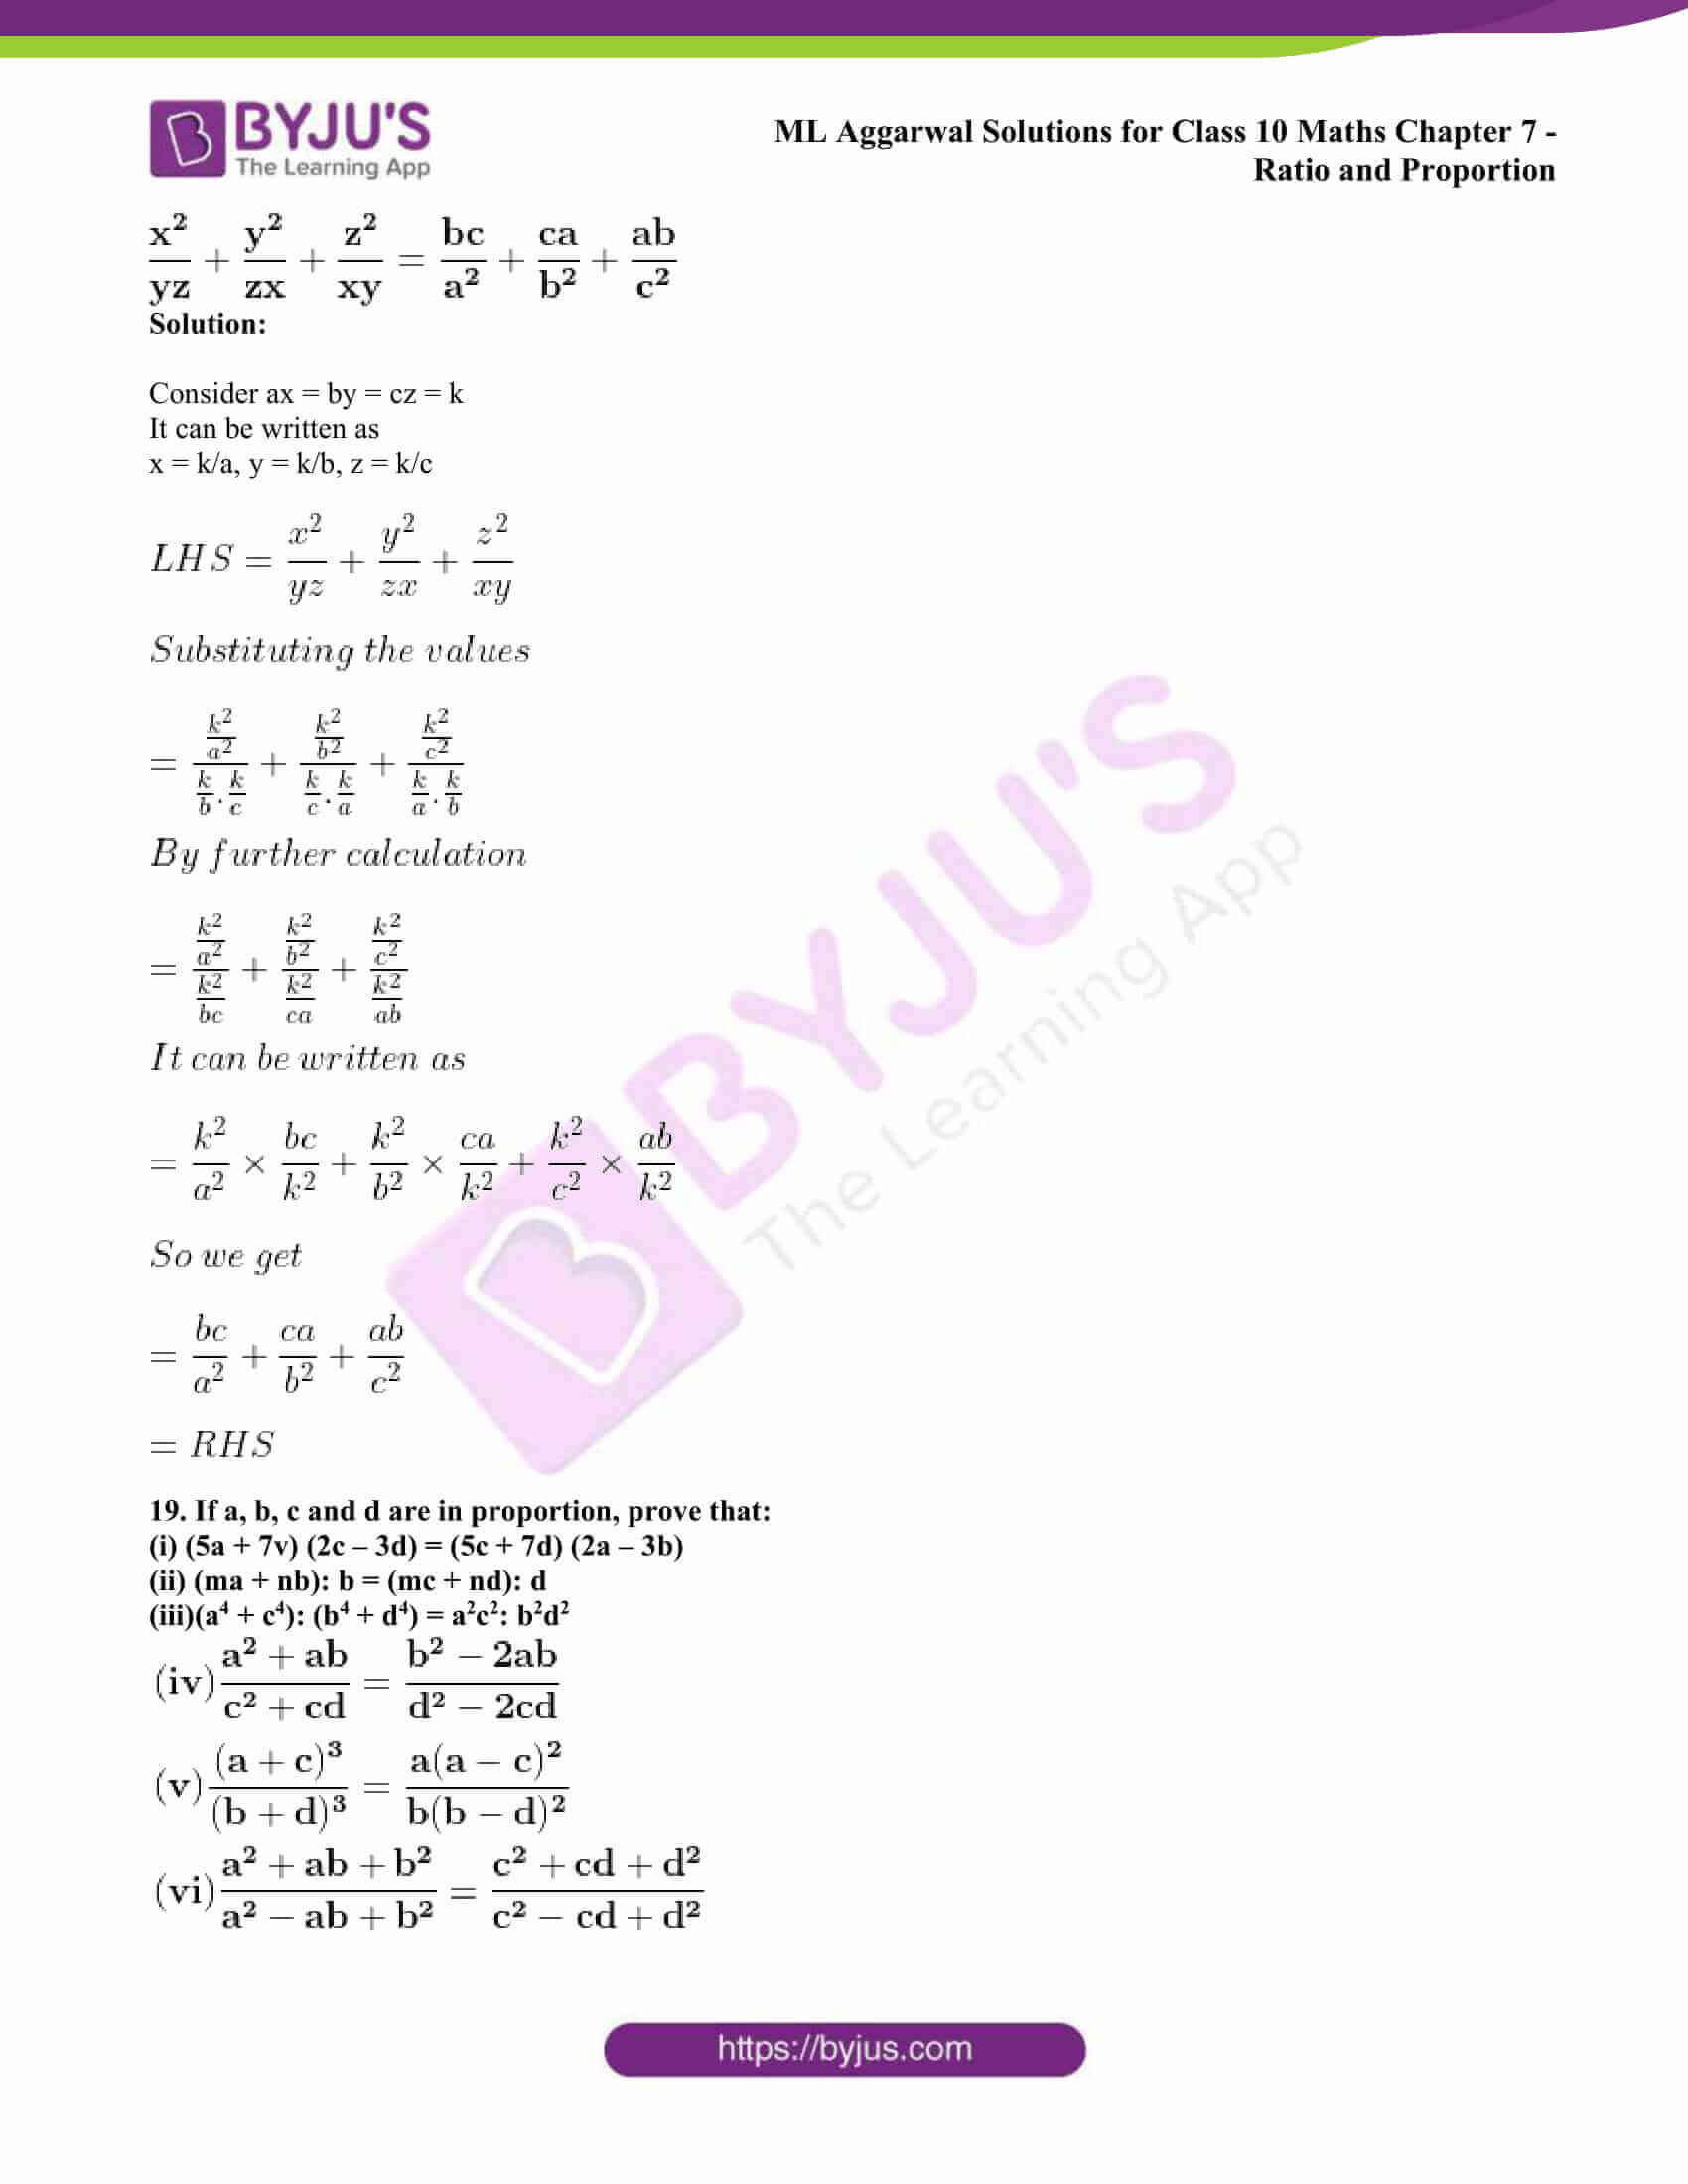 ml aggarwal solutions class 10 maths chapter 7 29